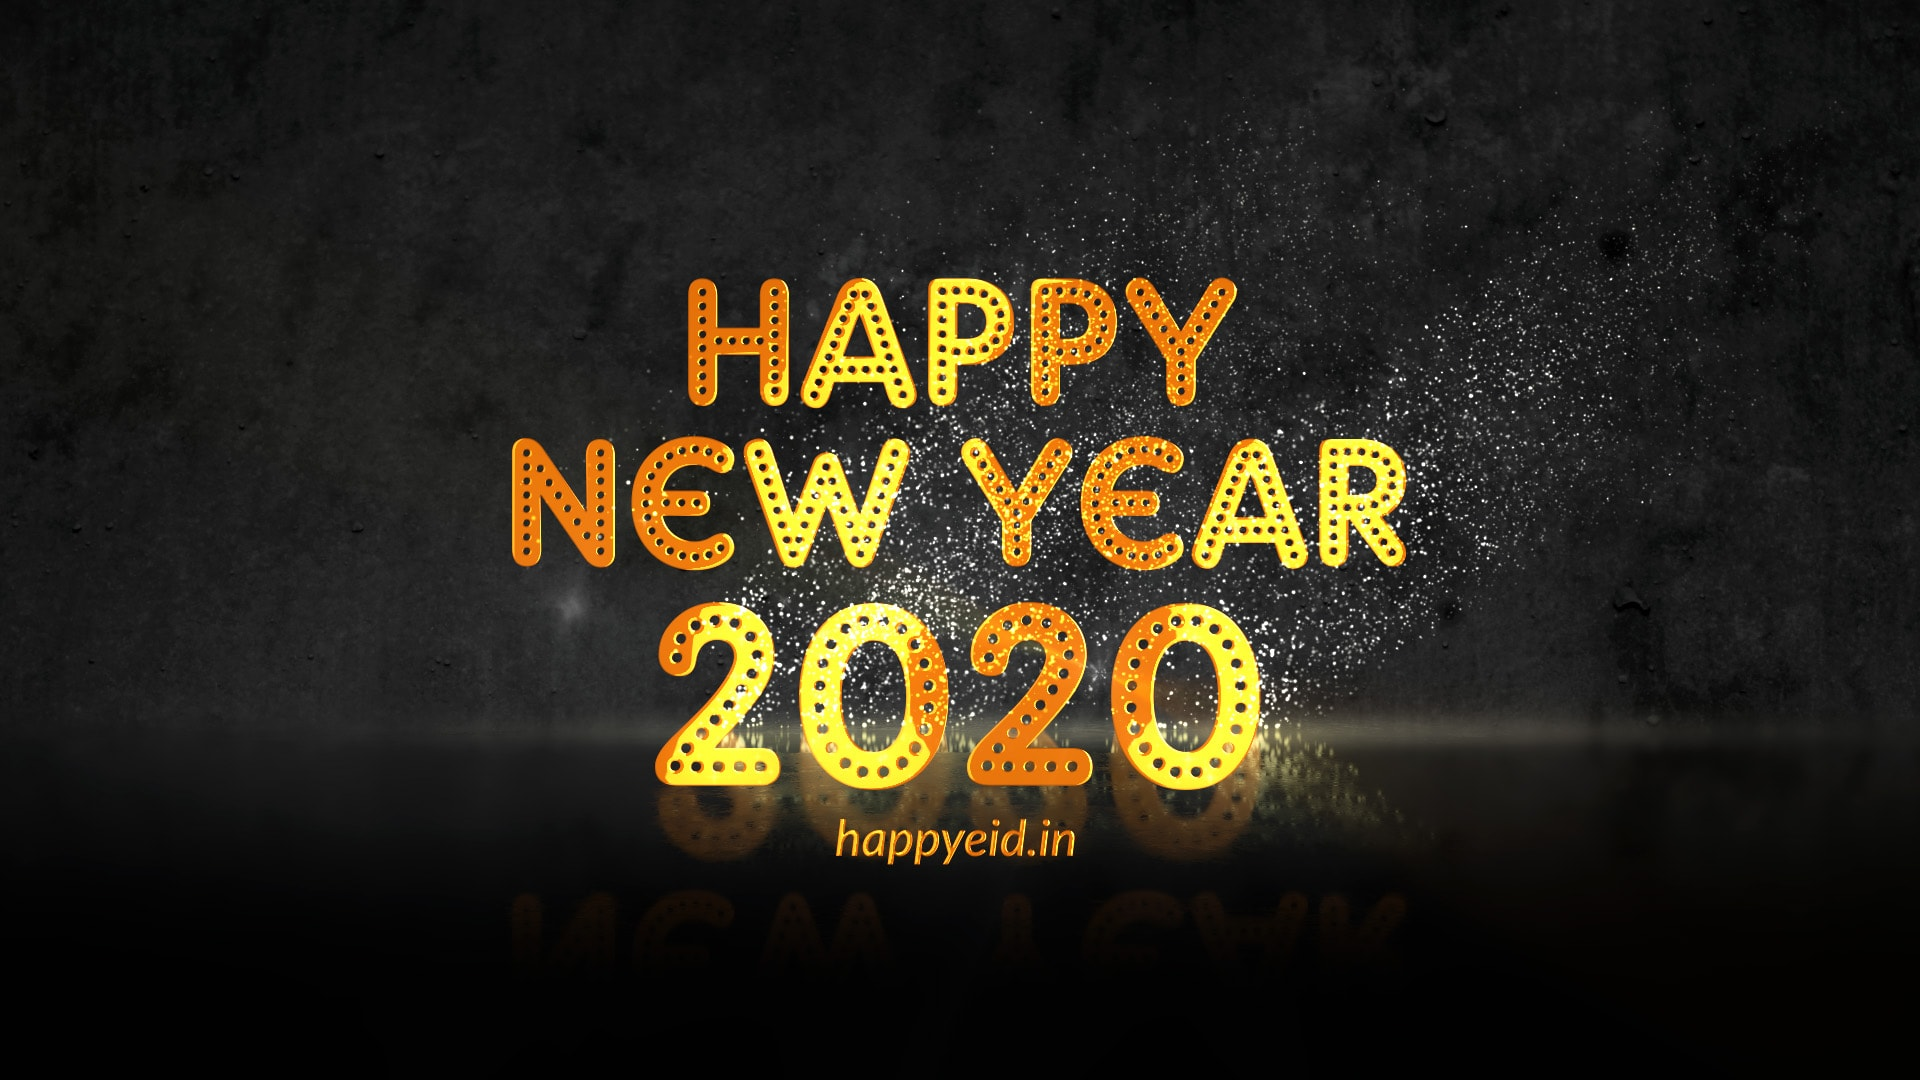 Happy New Year 2020 GIF Images Wishes Greetings 1920x1080